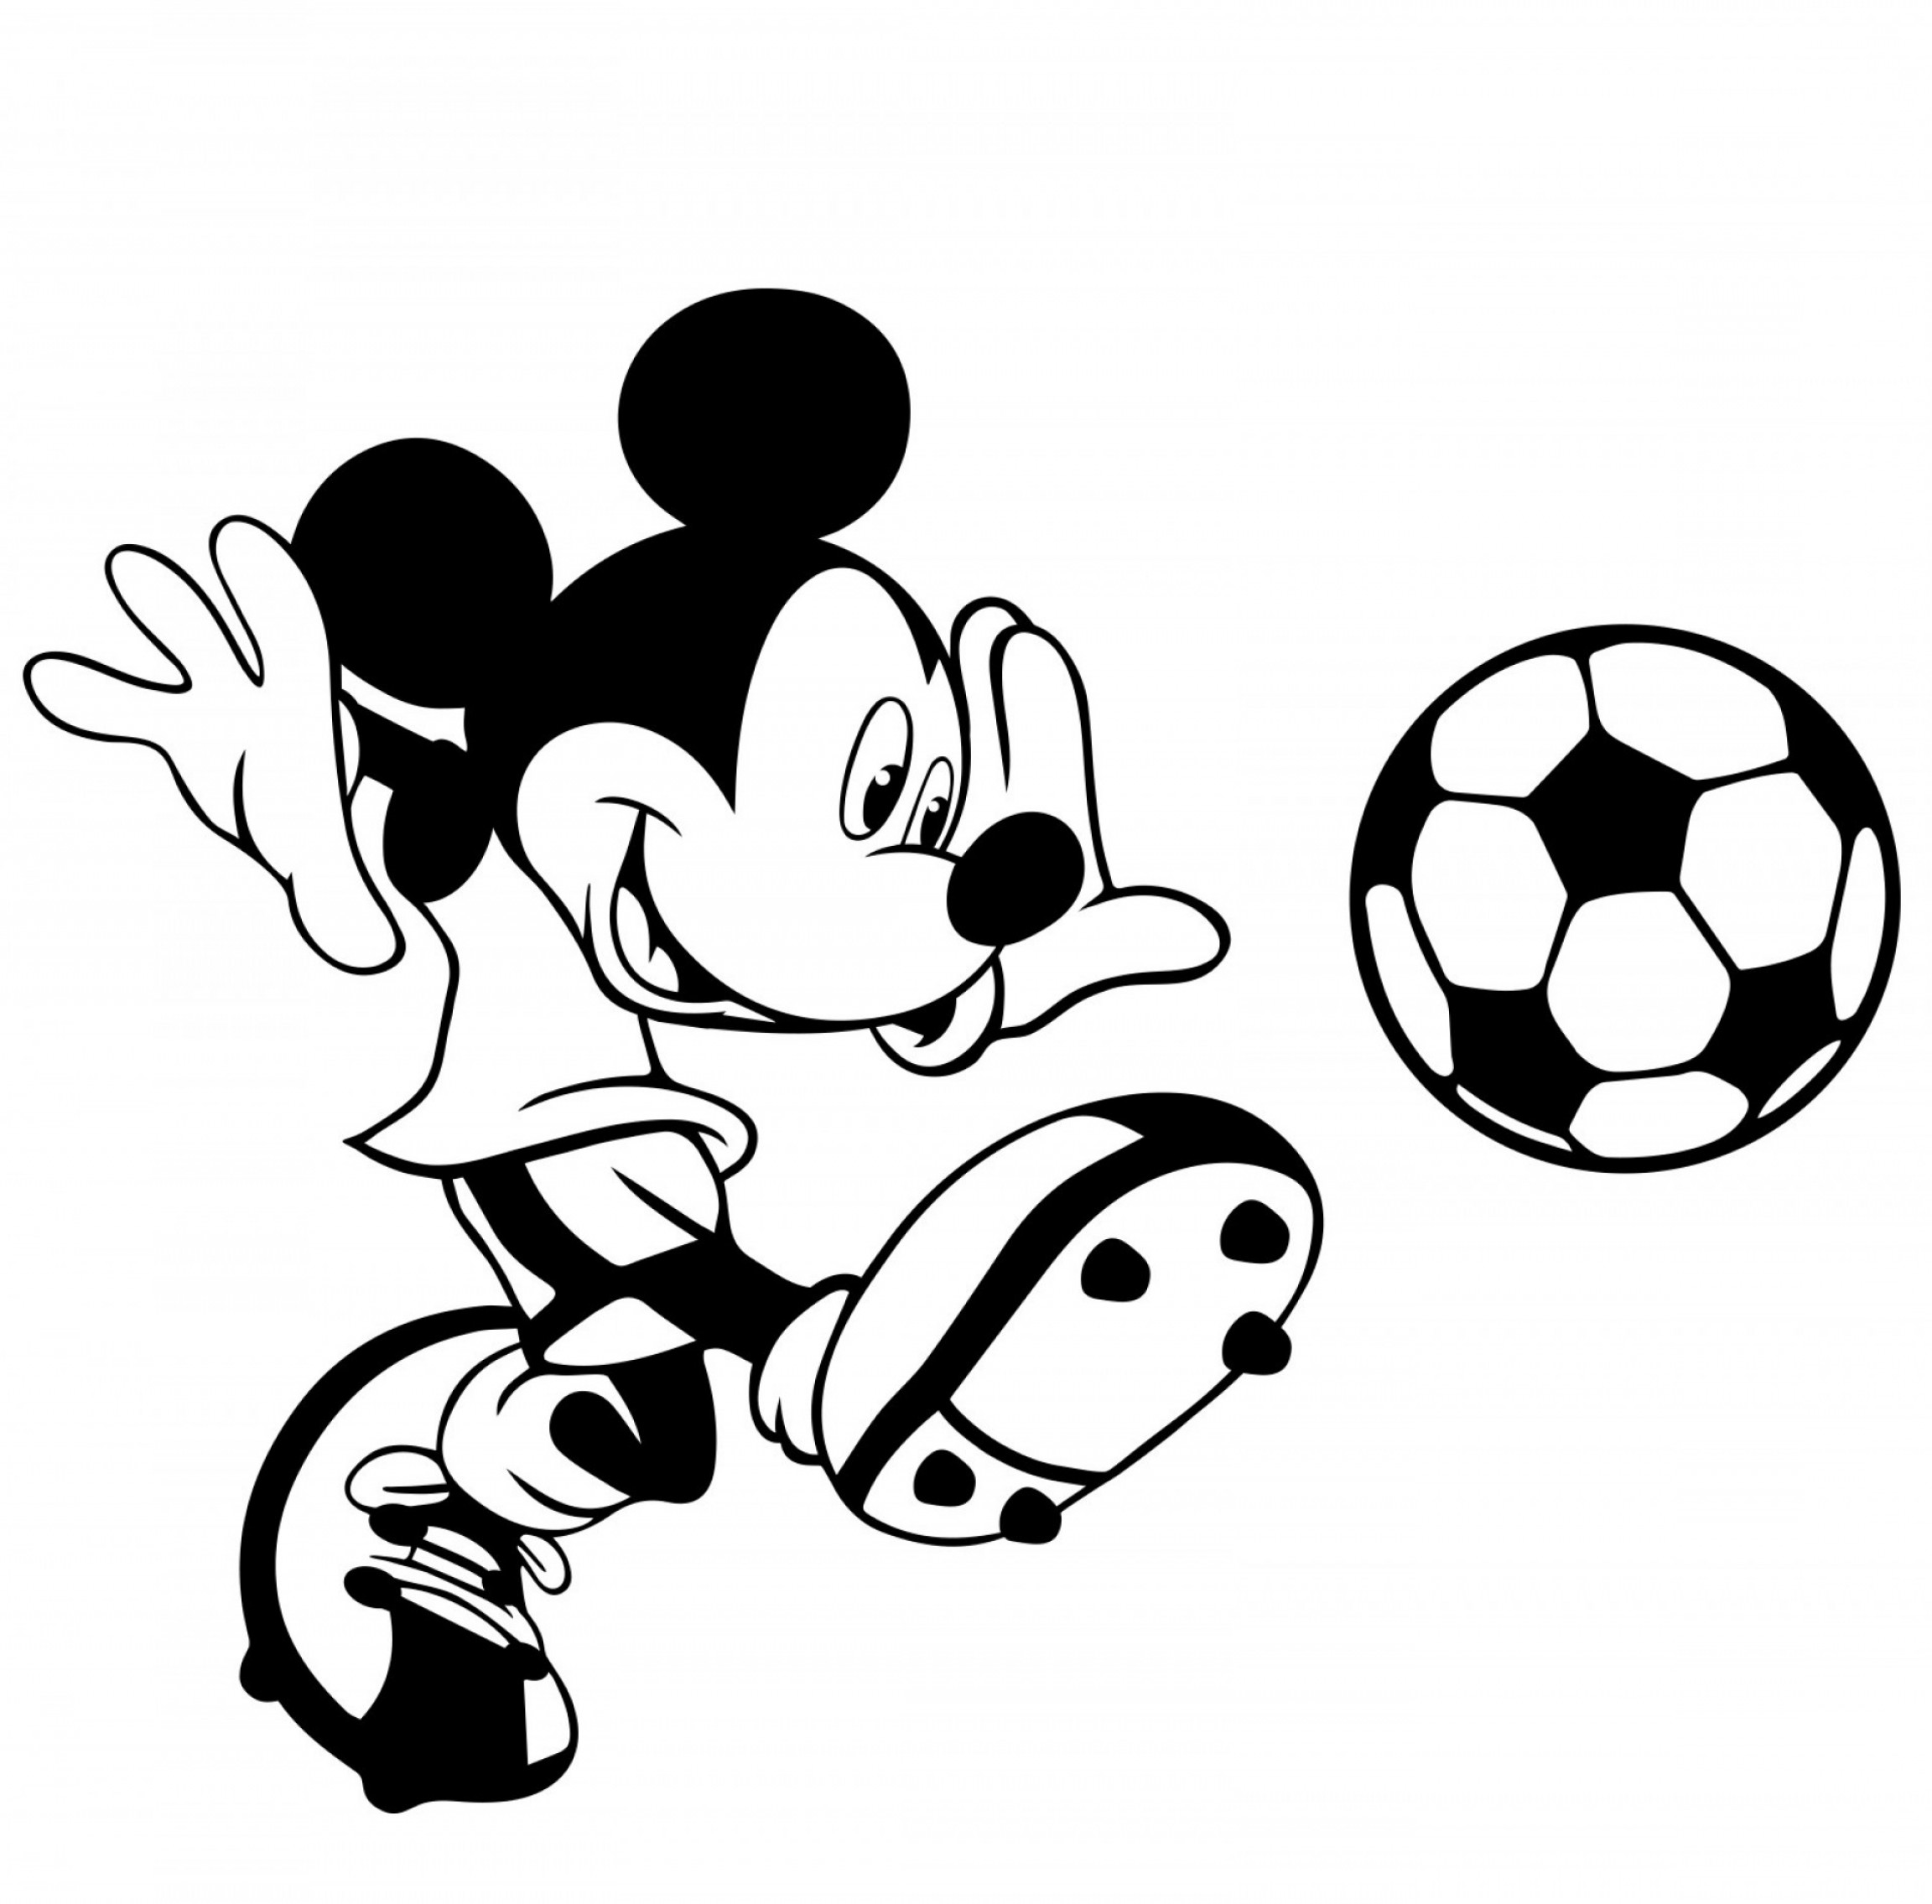 Mickey mouse clubhouse black and white clipart clip library library Mickey Mouse Clubhouse Black And White Clipart   SOIDERGI clip library library